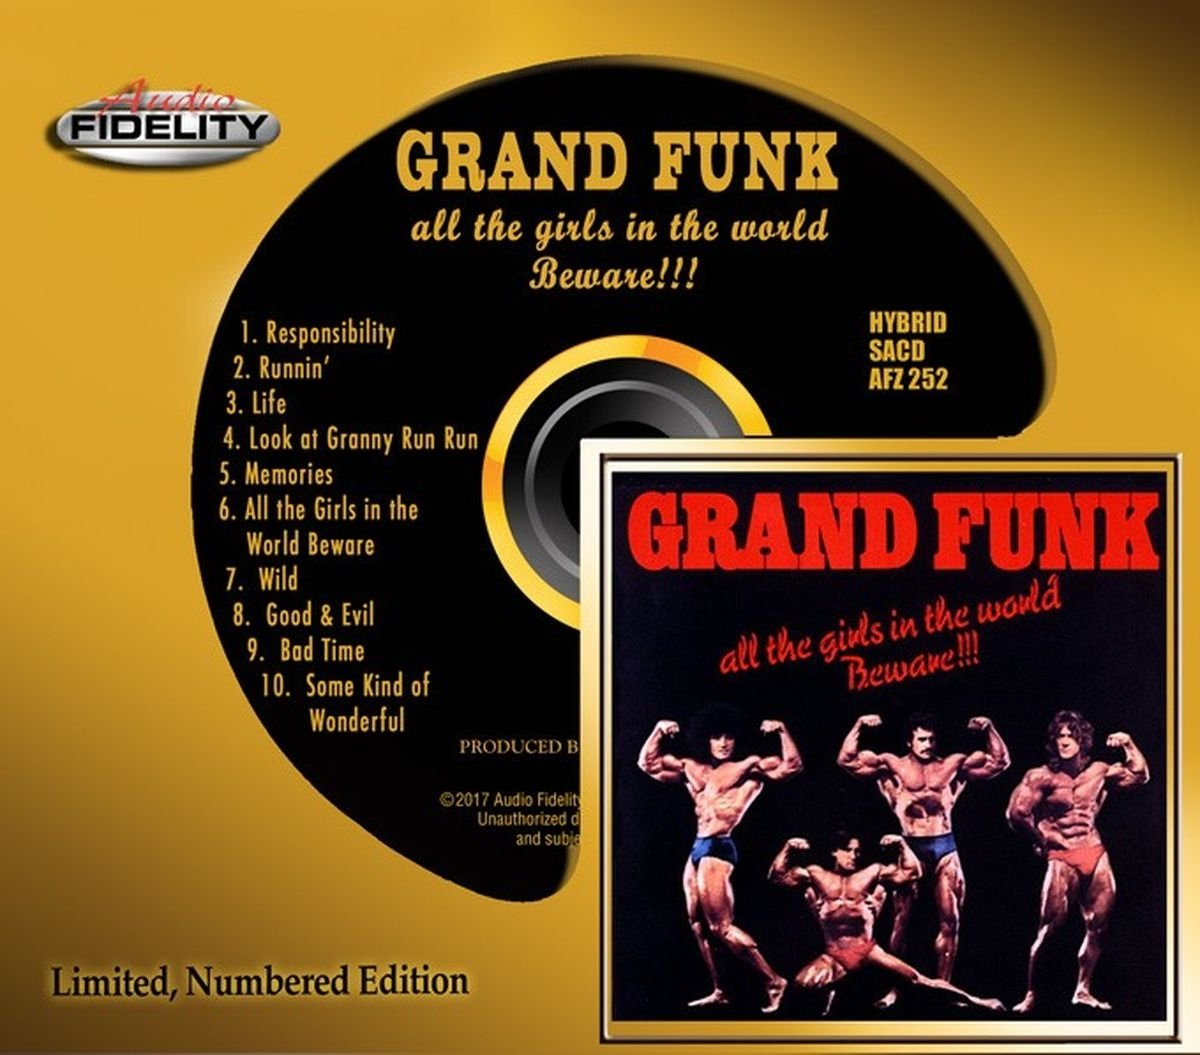 Grand Funk - All The Girls In The World Beware [Audio Fidelity Edition] (1974/2017) [CD FLAC] Download